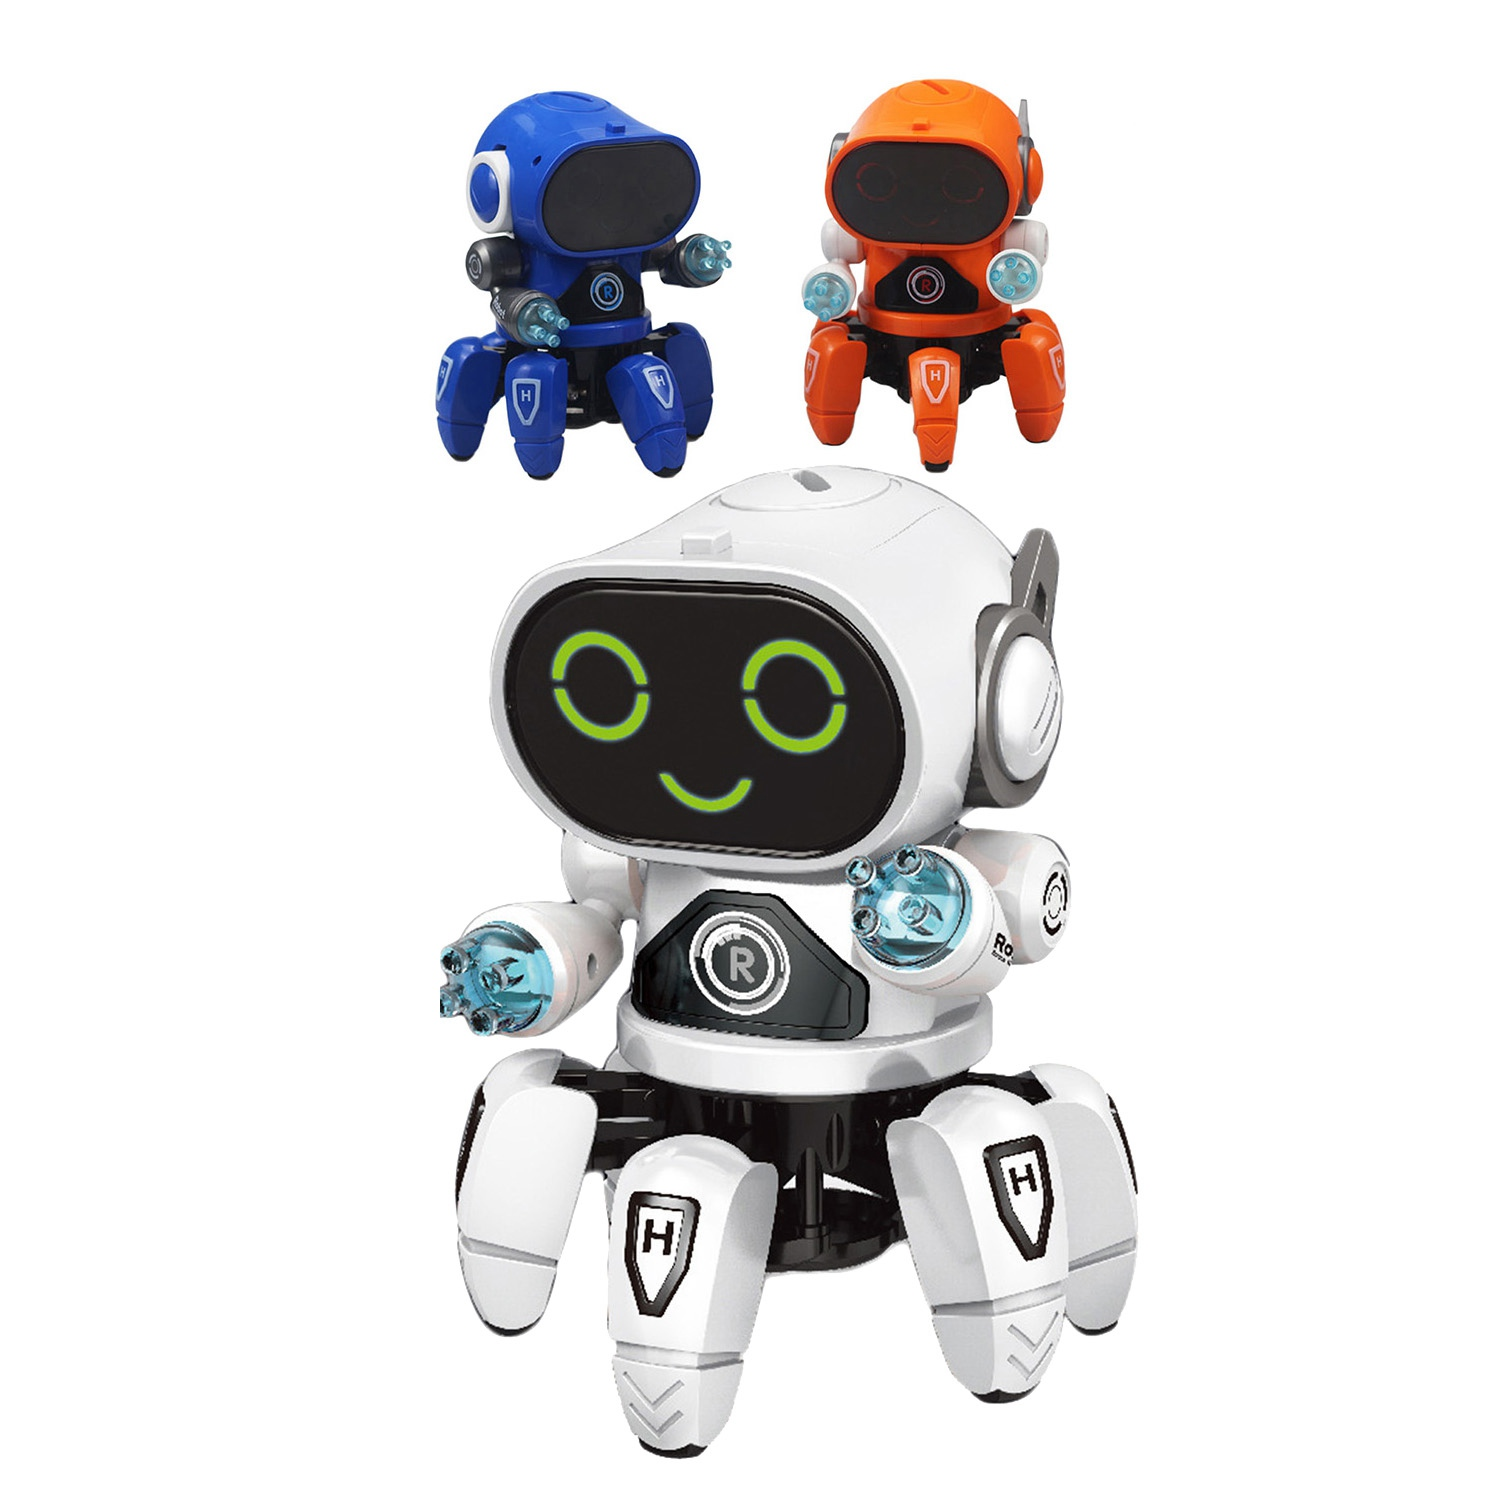 FBIL-Intelligent Induction Robot Diy Assembled Electric Robot Kids Educational Toys